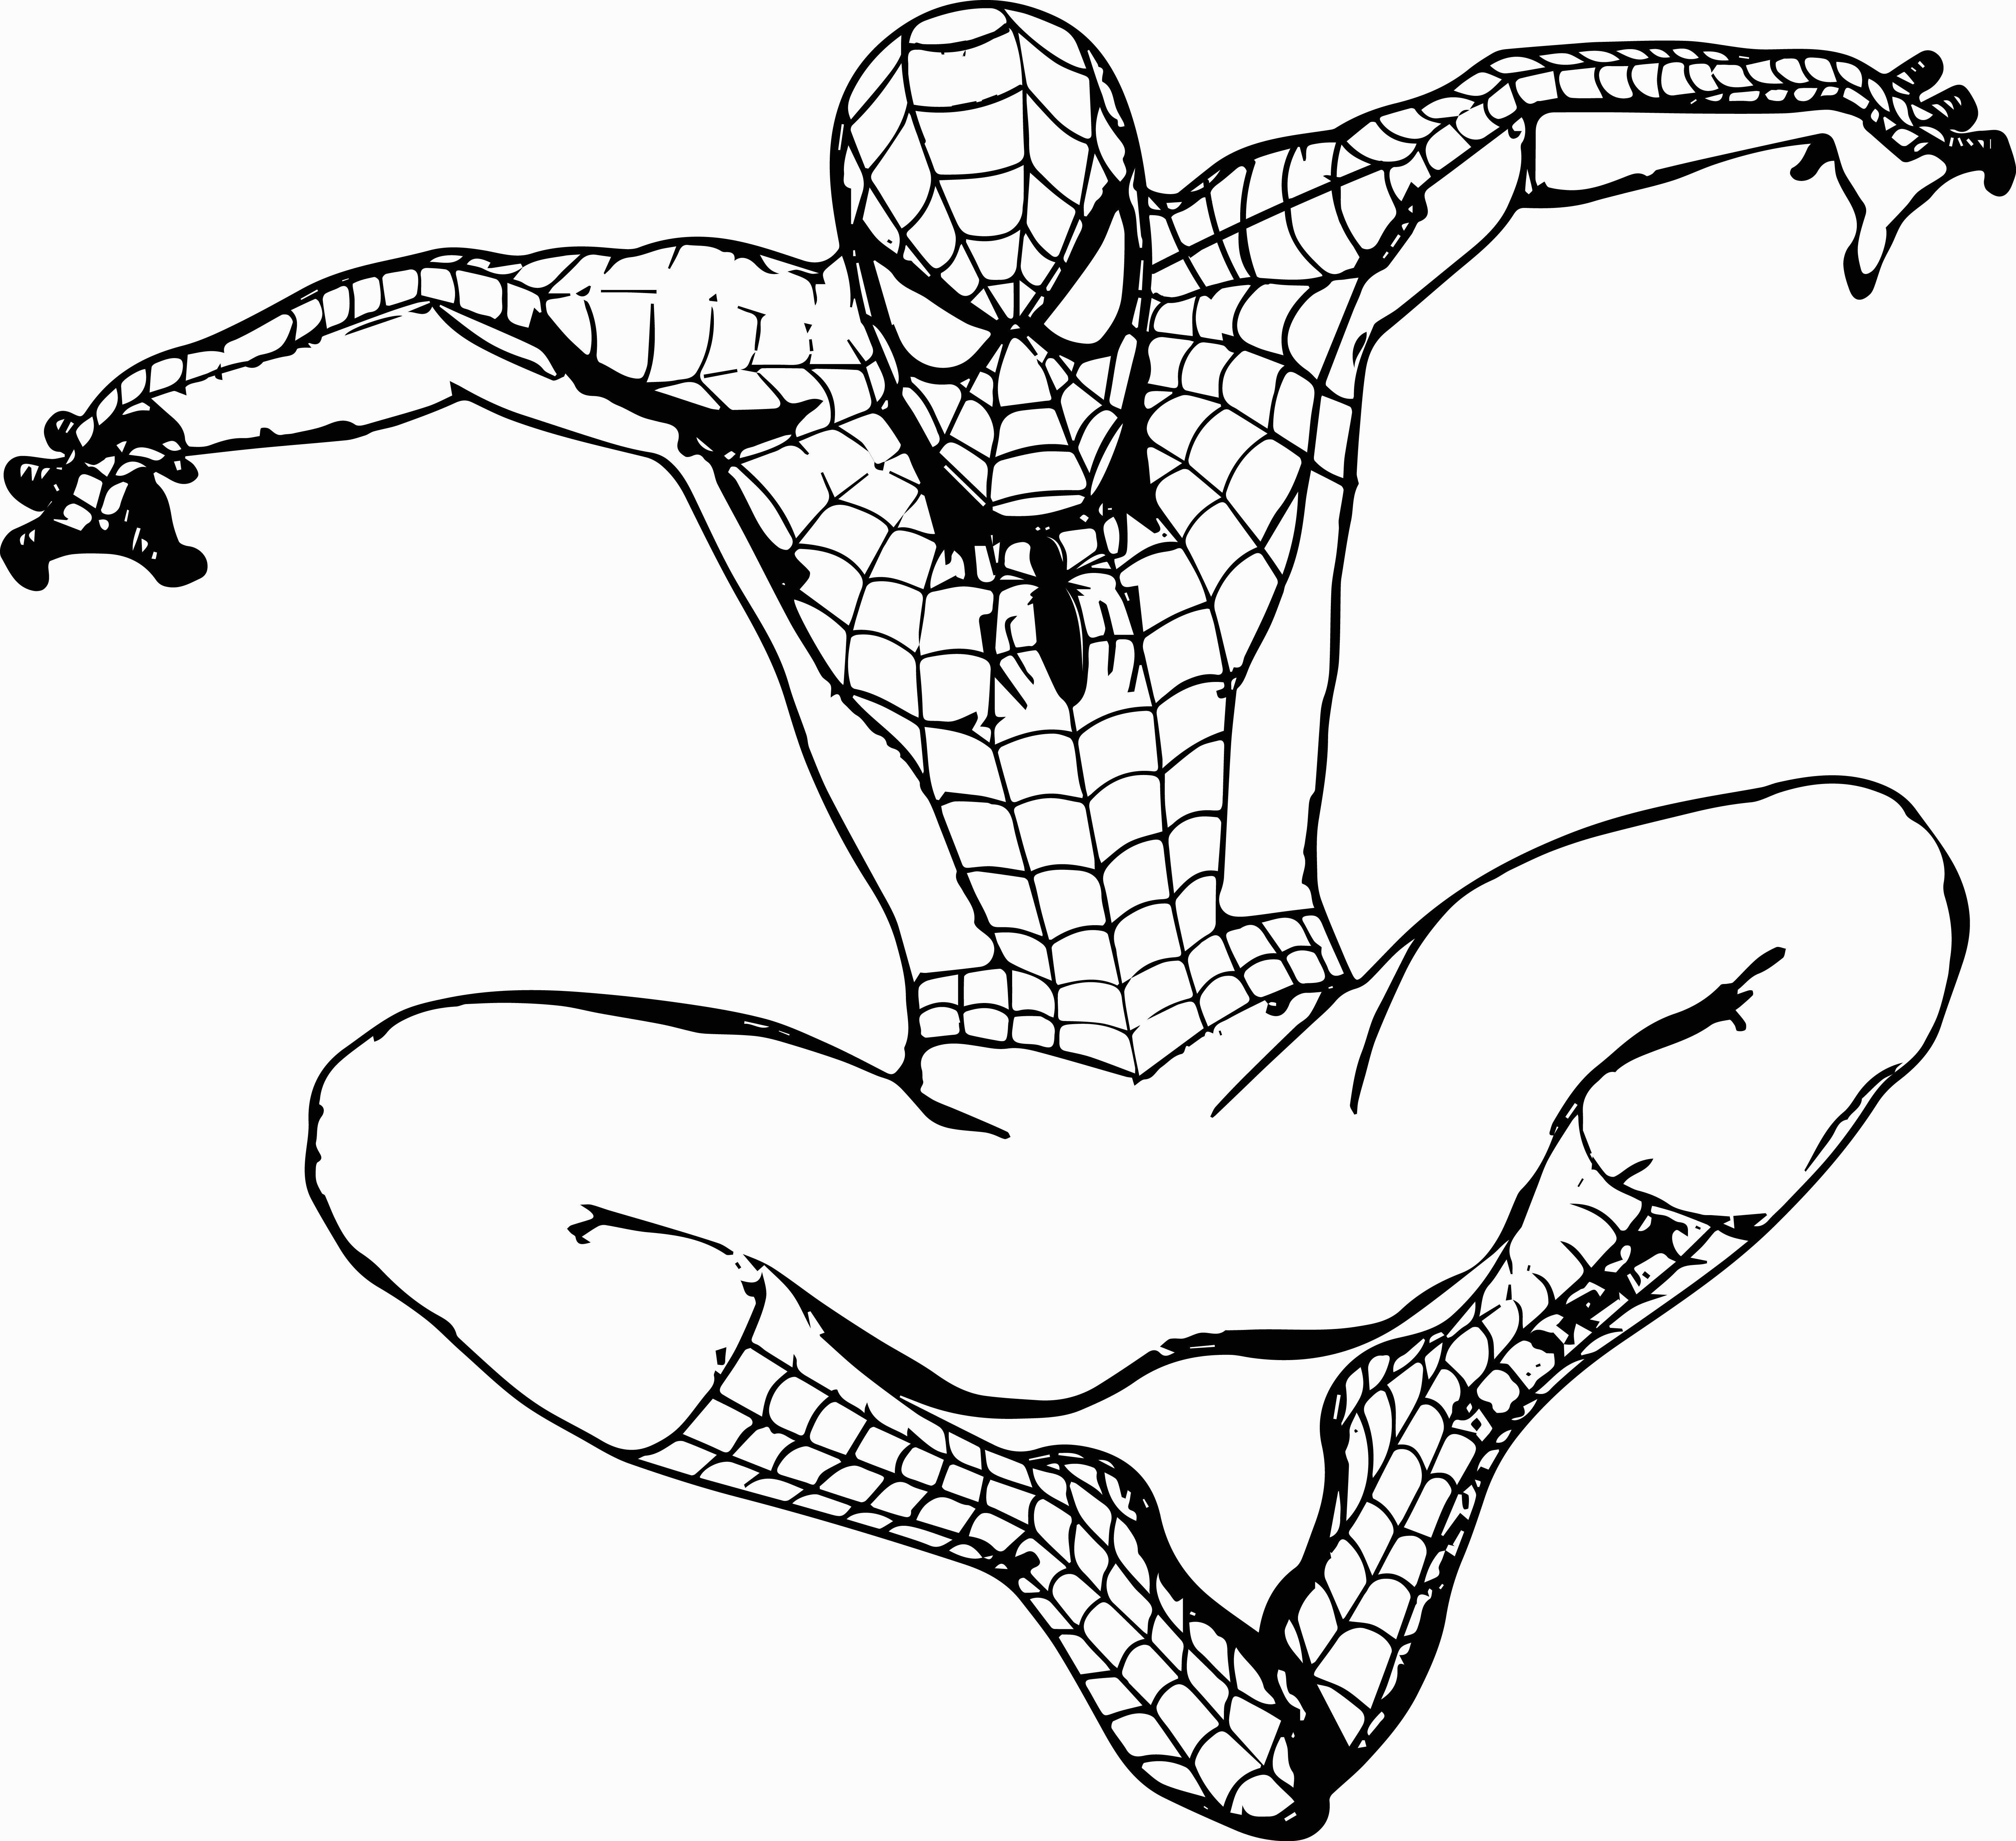 Free Printable Spiderman Images To Color Of Your Favorite   Coloring - Free Spiderman Printables